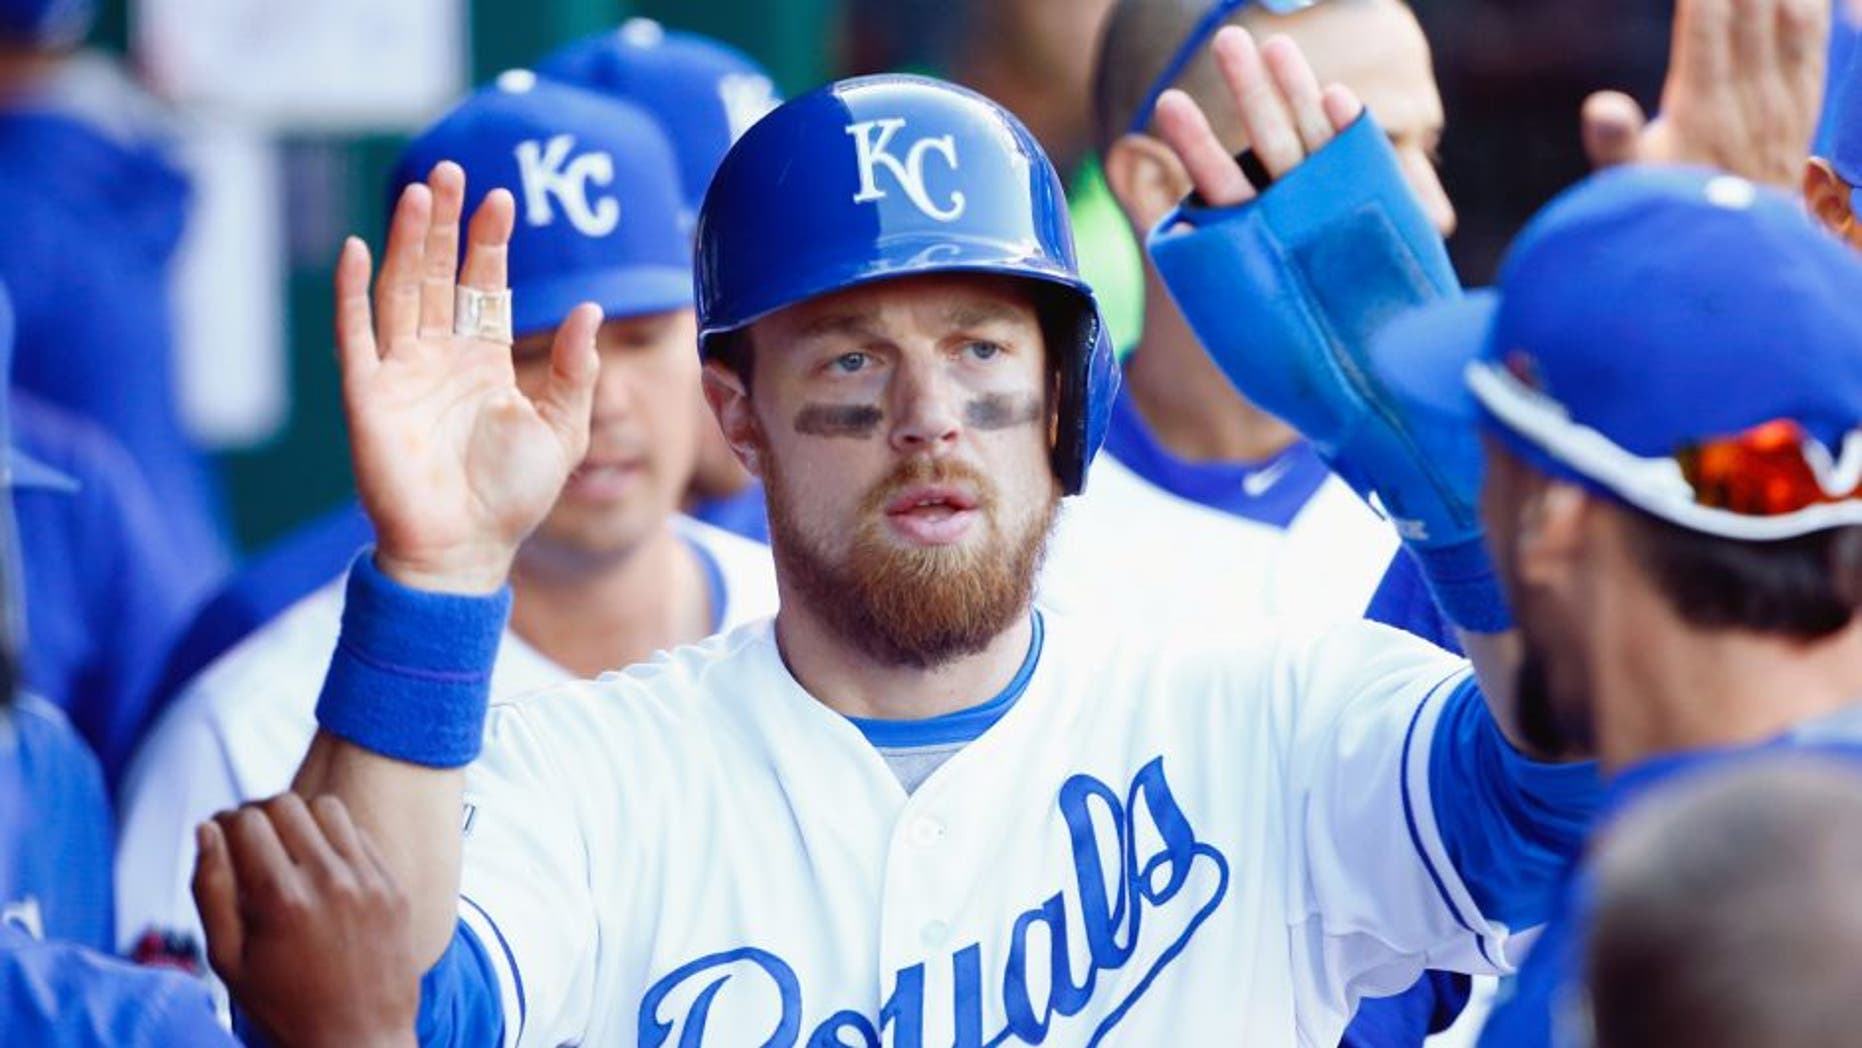 Ben Zobrist #18 of the Kansas City Royals celebrates in the dugout after scoring a run in the seventh inning against the Toronto Blue Jays in game two of the American League Championship Series at Kauffman Stadium on October 17, 2015 in Kansas City, Missouri. (Photo by Jamie Squire/Getty Images)